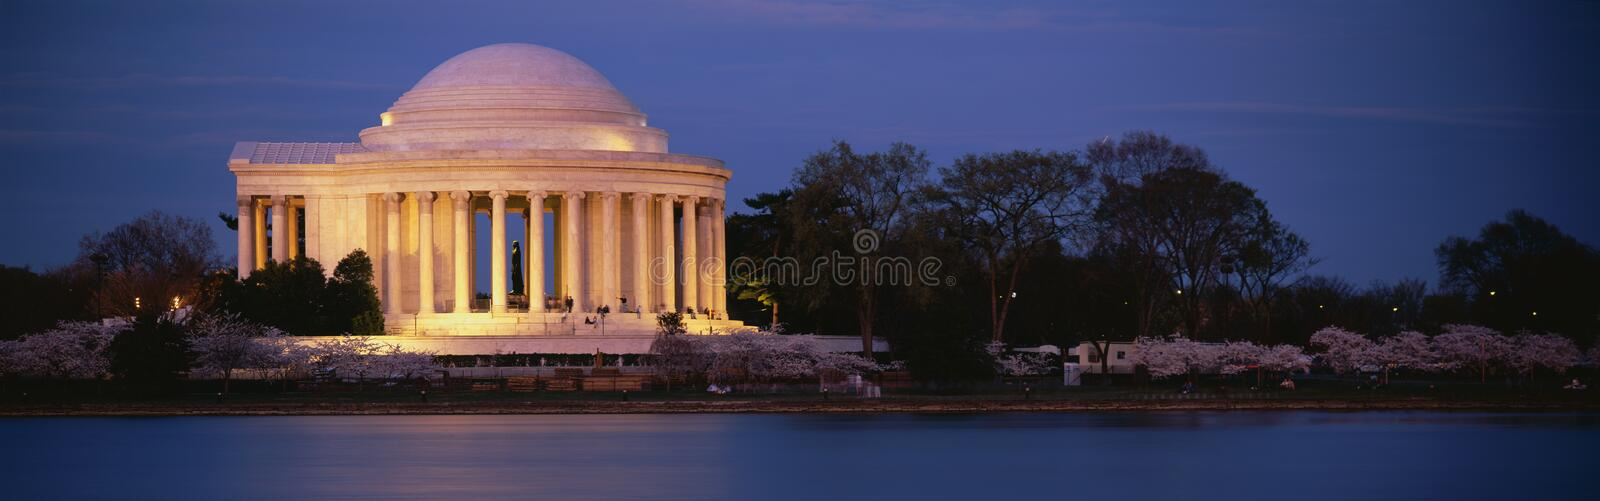 Jefferson Memorial at dusk. This is the Jefferson Memorial next to the Tidal Basin. Cherry blossoms are blooming on the trees surrounding it at dusk royalty free stock photography